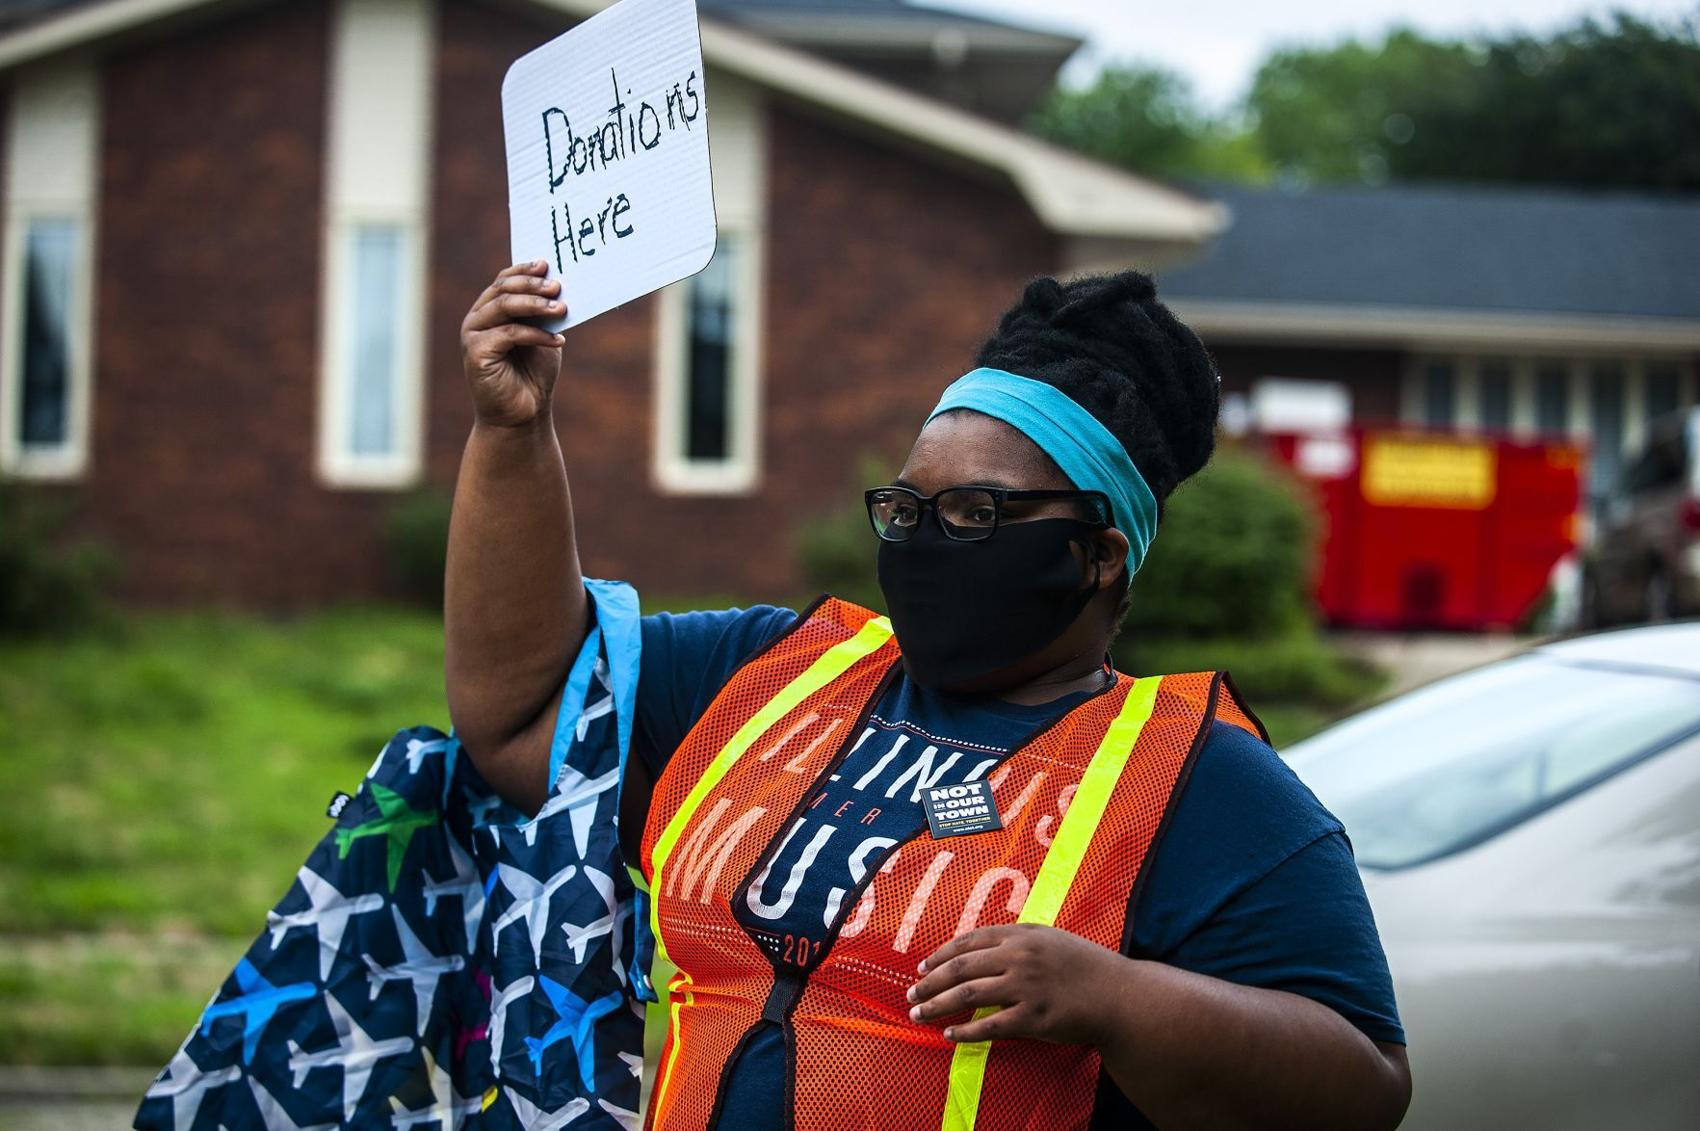 Ashyanna Watsonwaits to accept donations Friday, July 31, 2020, during a drive-by parade for Art Taylor and his wife, Camille, at their home in Bloomington. Donations would provide public schools resources to purchase more books normalizing diversity. (C